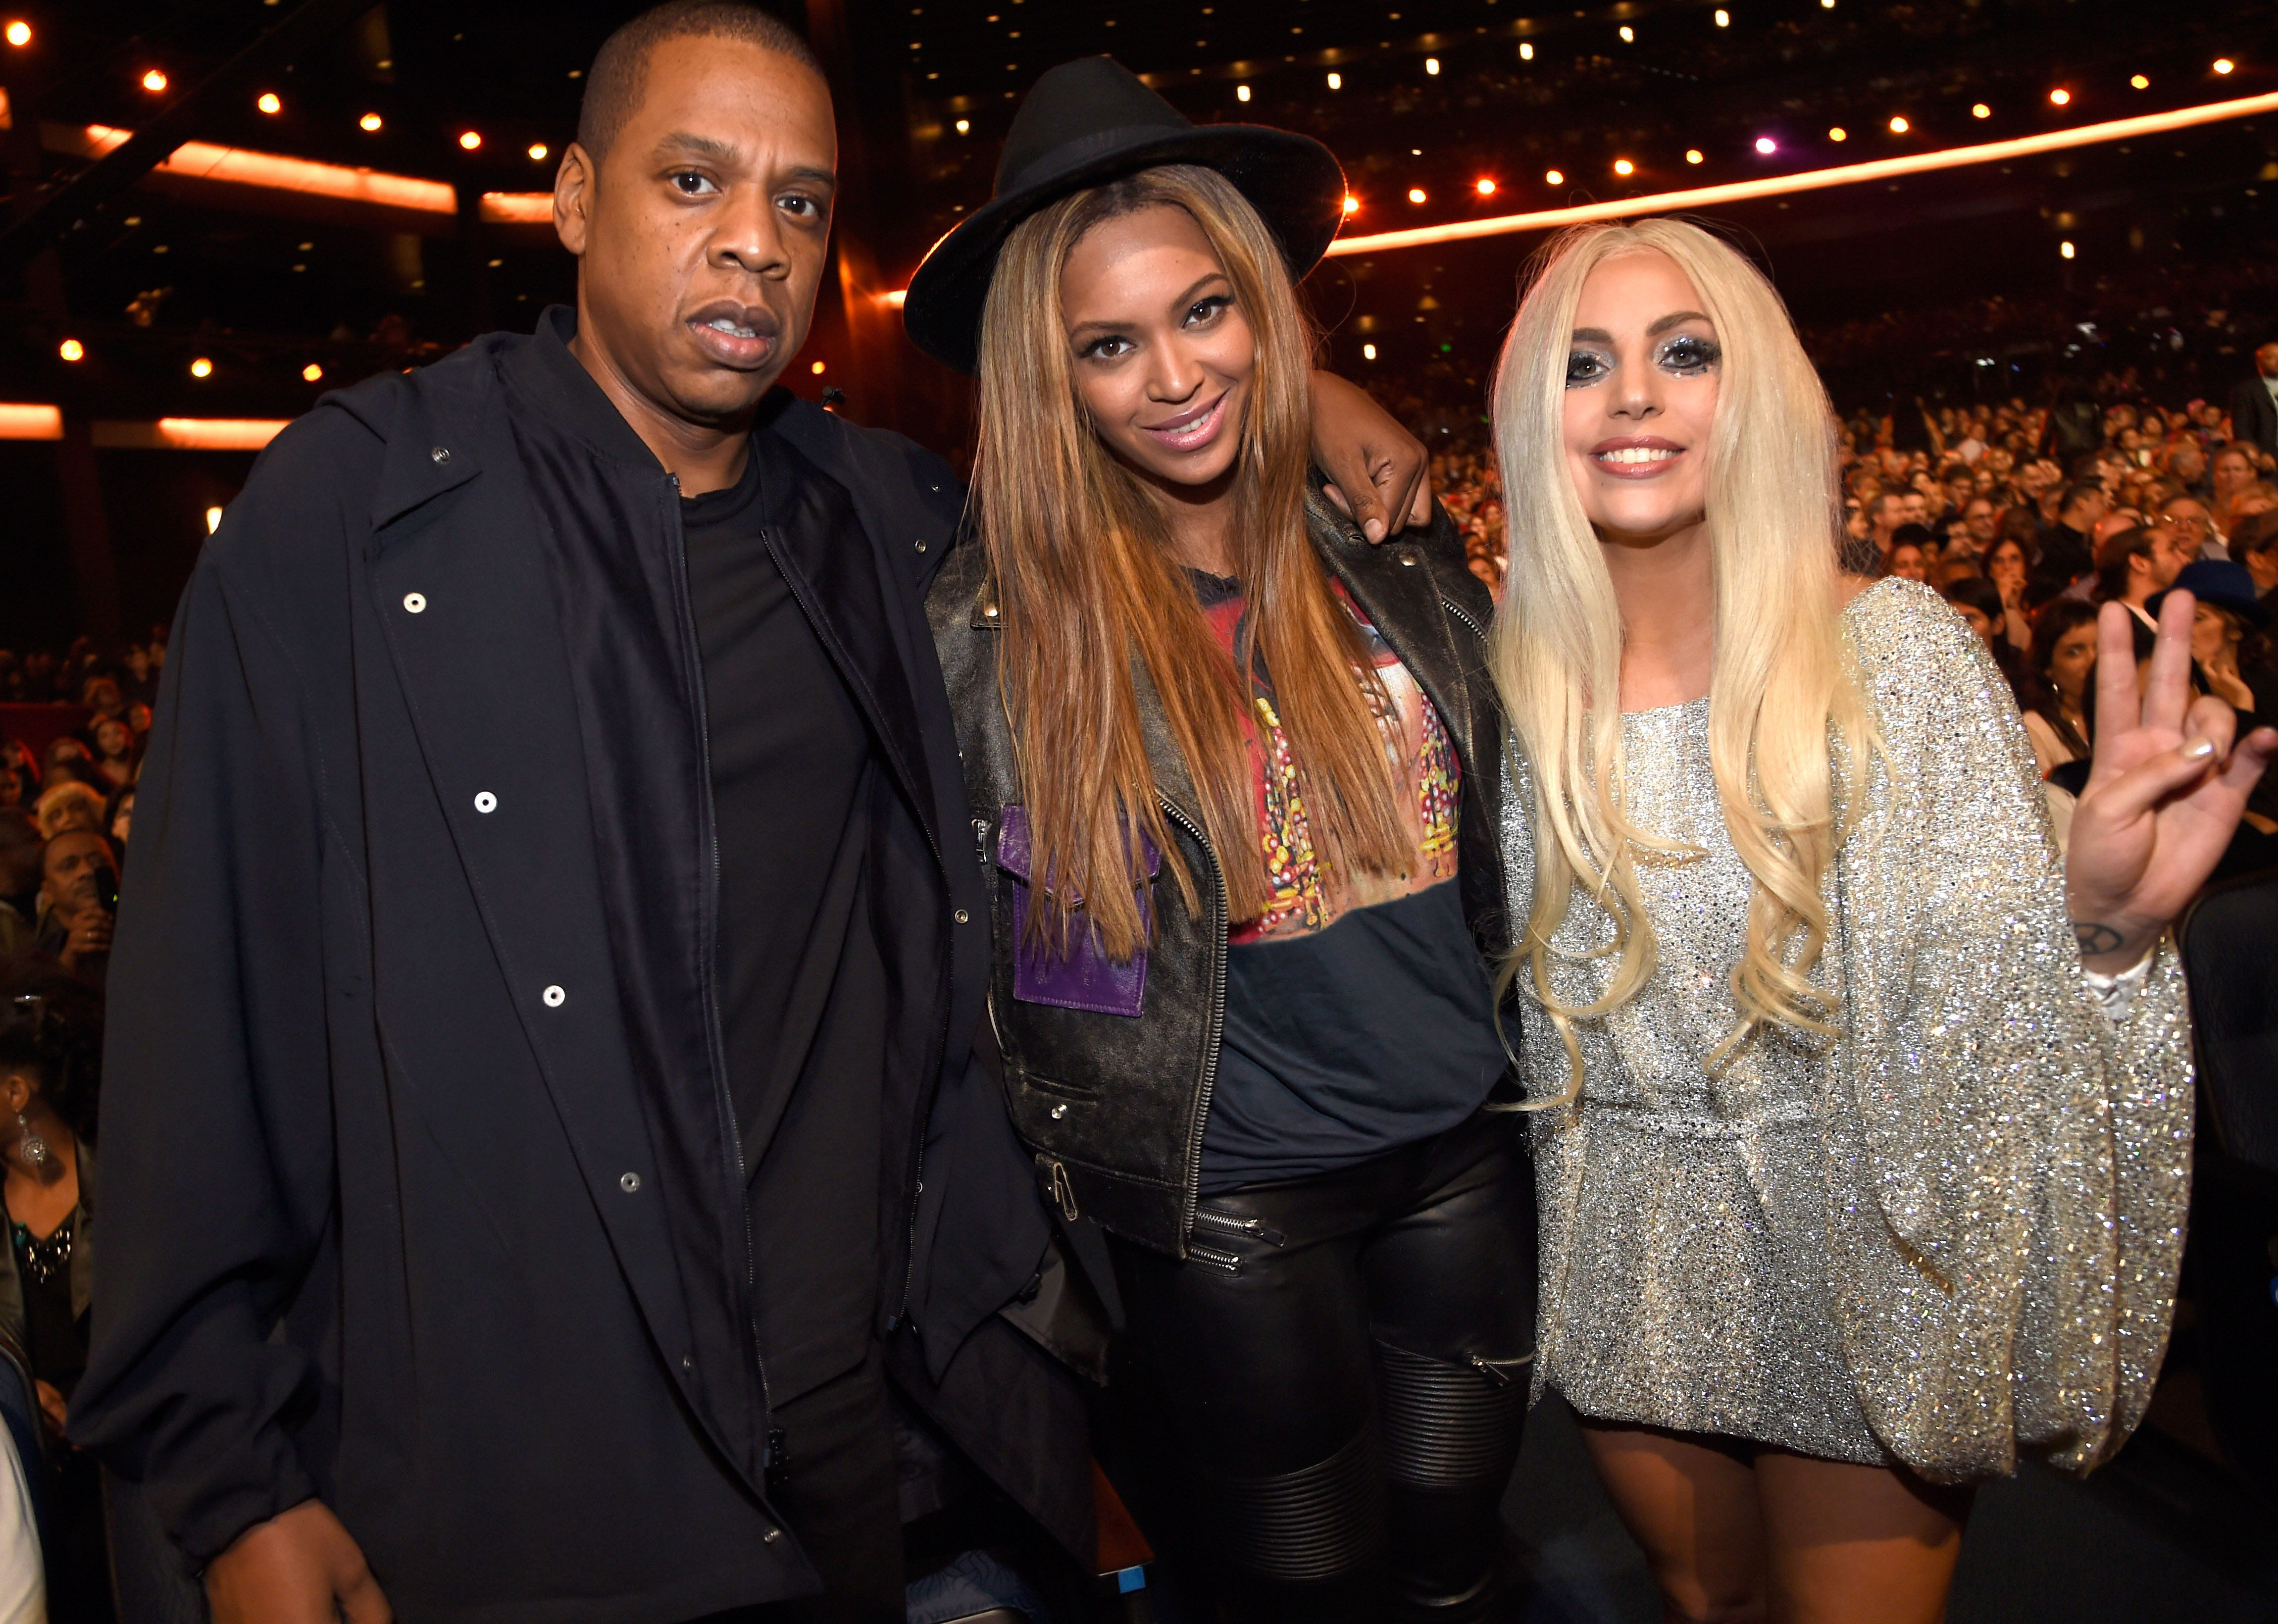 LOS ANGELES, CA - FEBRUARY 10:   Jay Z, Beyonce and Lady Gaga attend Stevie Wonder: Songs In The Key Of Life - An All-Star GRAMMY Salute at Nokia Theatre L.A. Live on February 10, 2015 in Los Angeles, California.  (Photo by Kevin Mazur/WireImage)